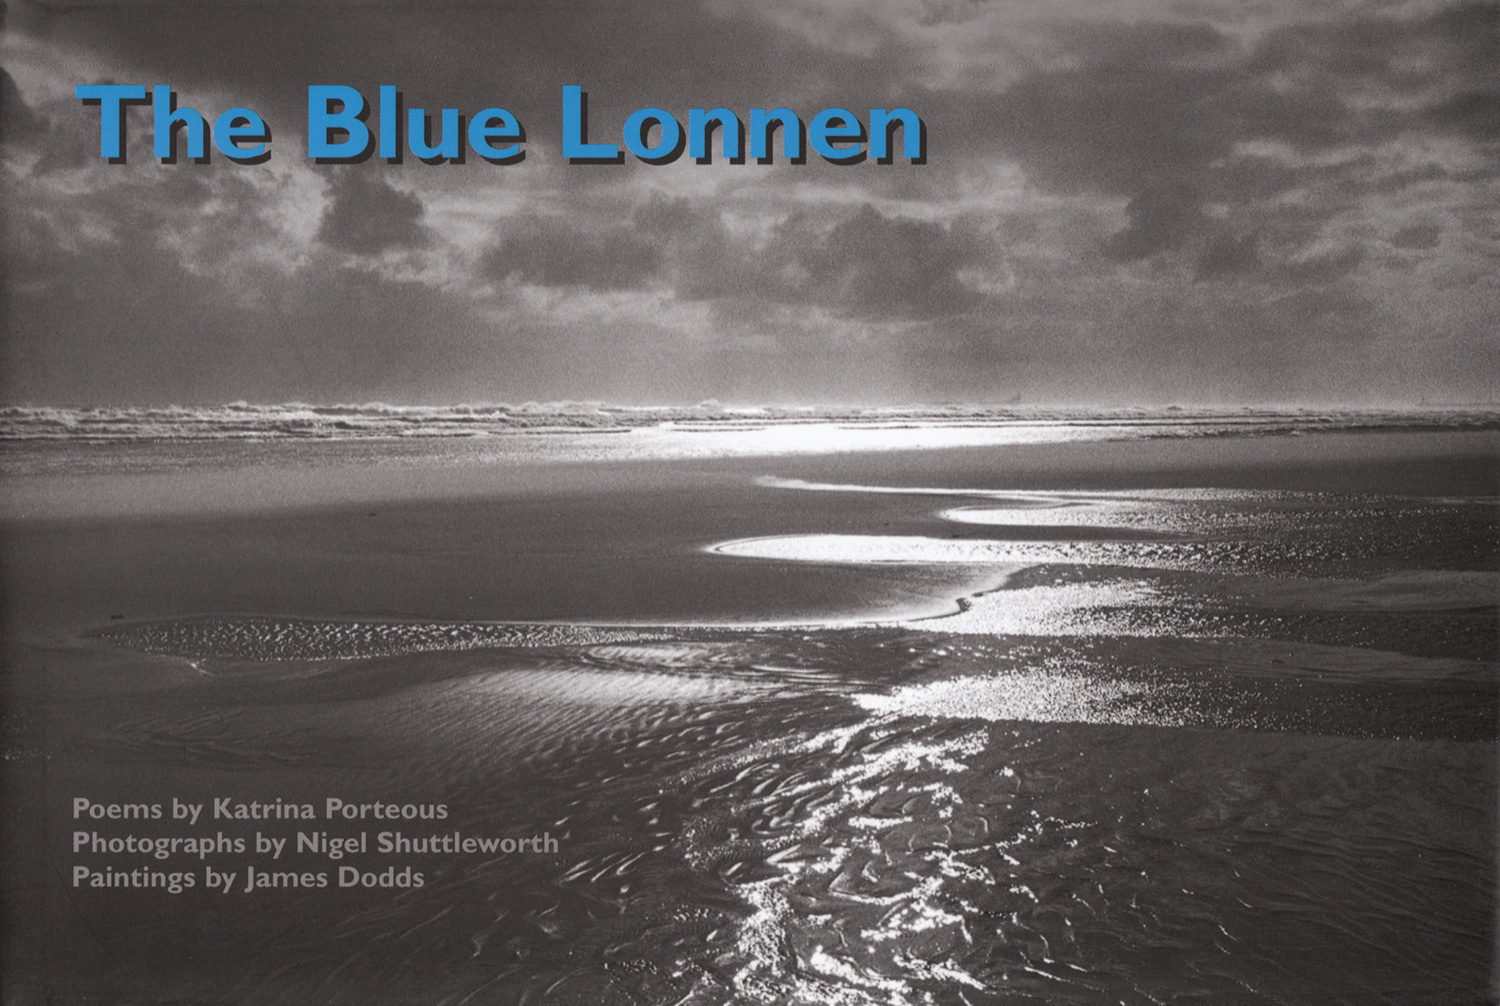 The Blue Lonnen by James Dodds